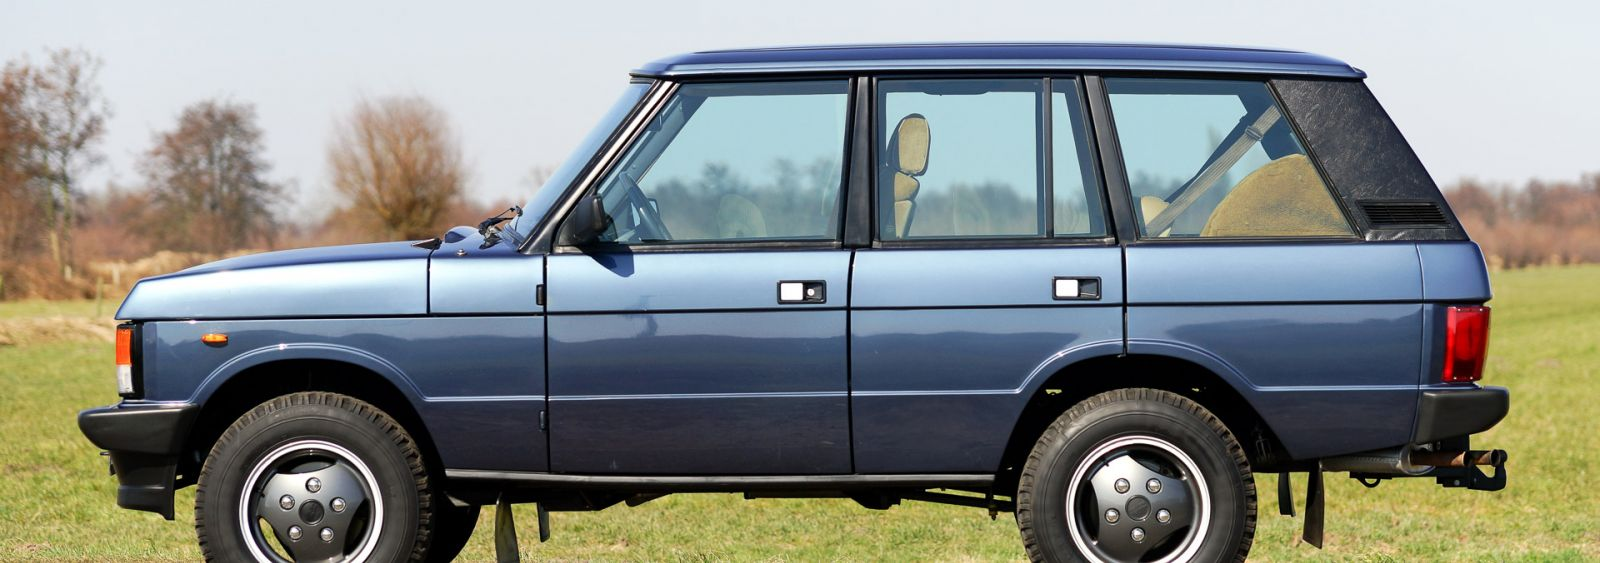 Range rover classic 1988 welcome to classicargarage for Classic house 1988